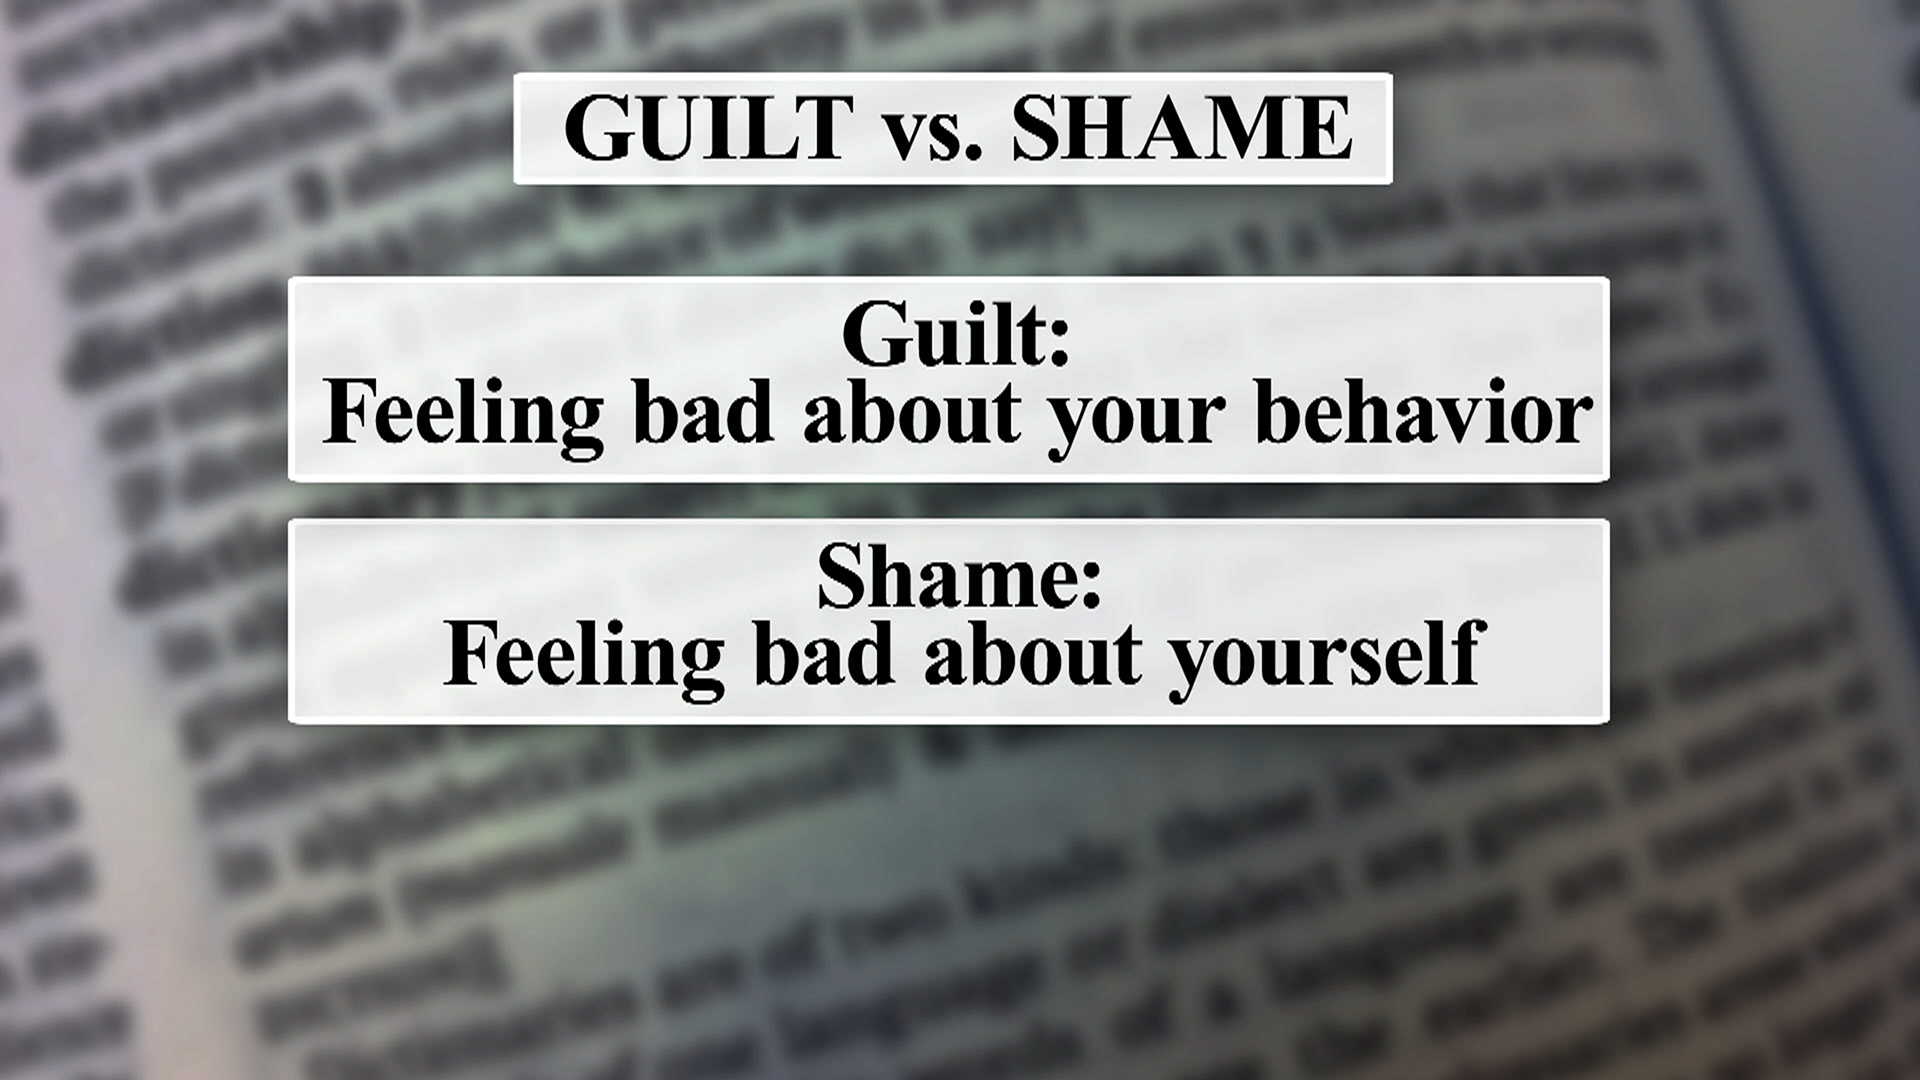 guilt and shame in who you While people generally use the words 'guilt' and 'shame' interchangeably, they actually refer to different experiences shame concerns painful feelings about oneself.